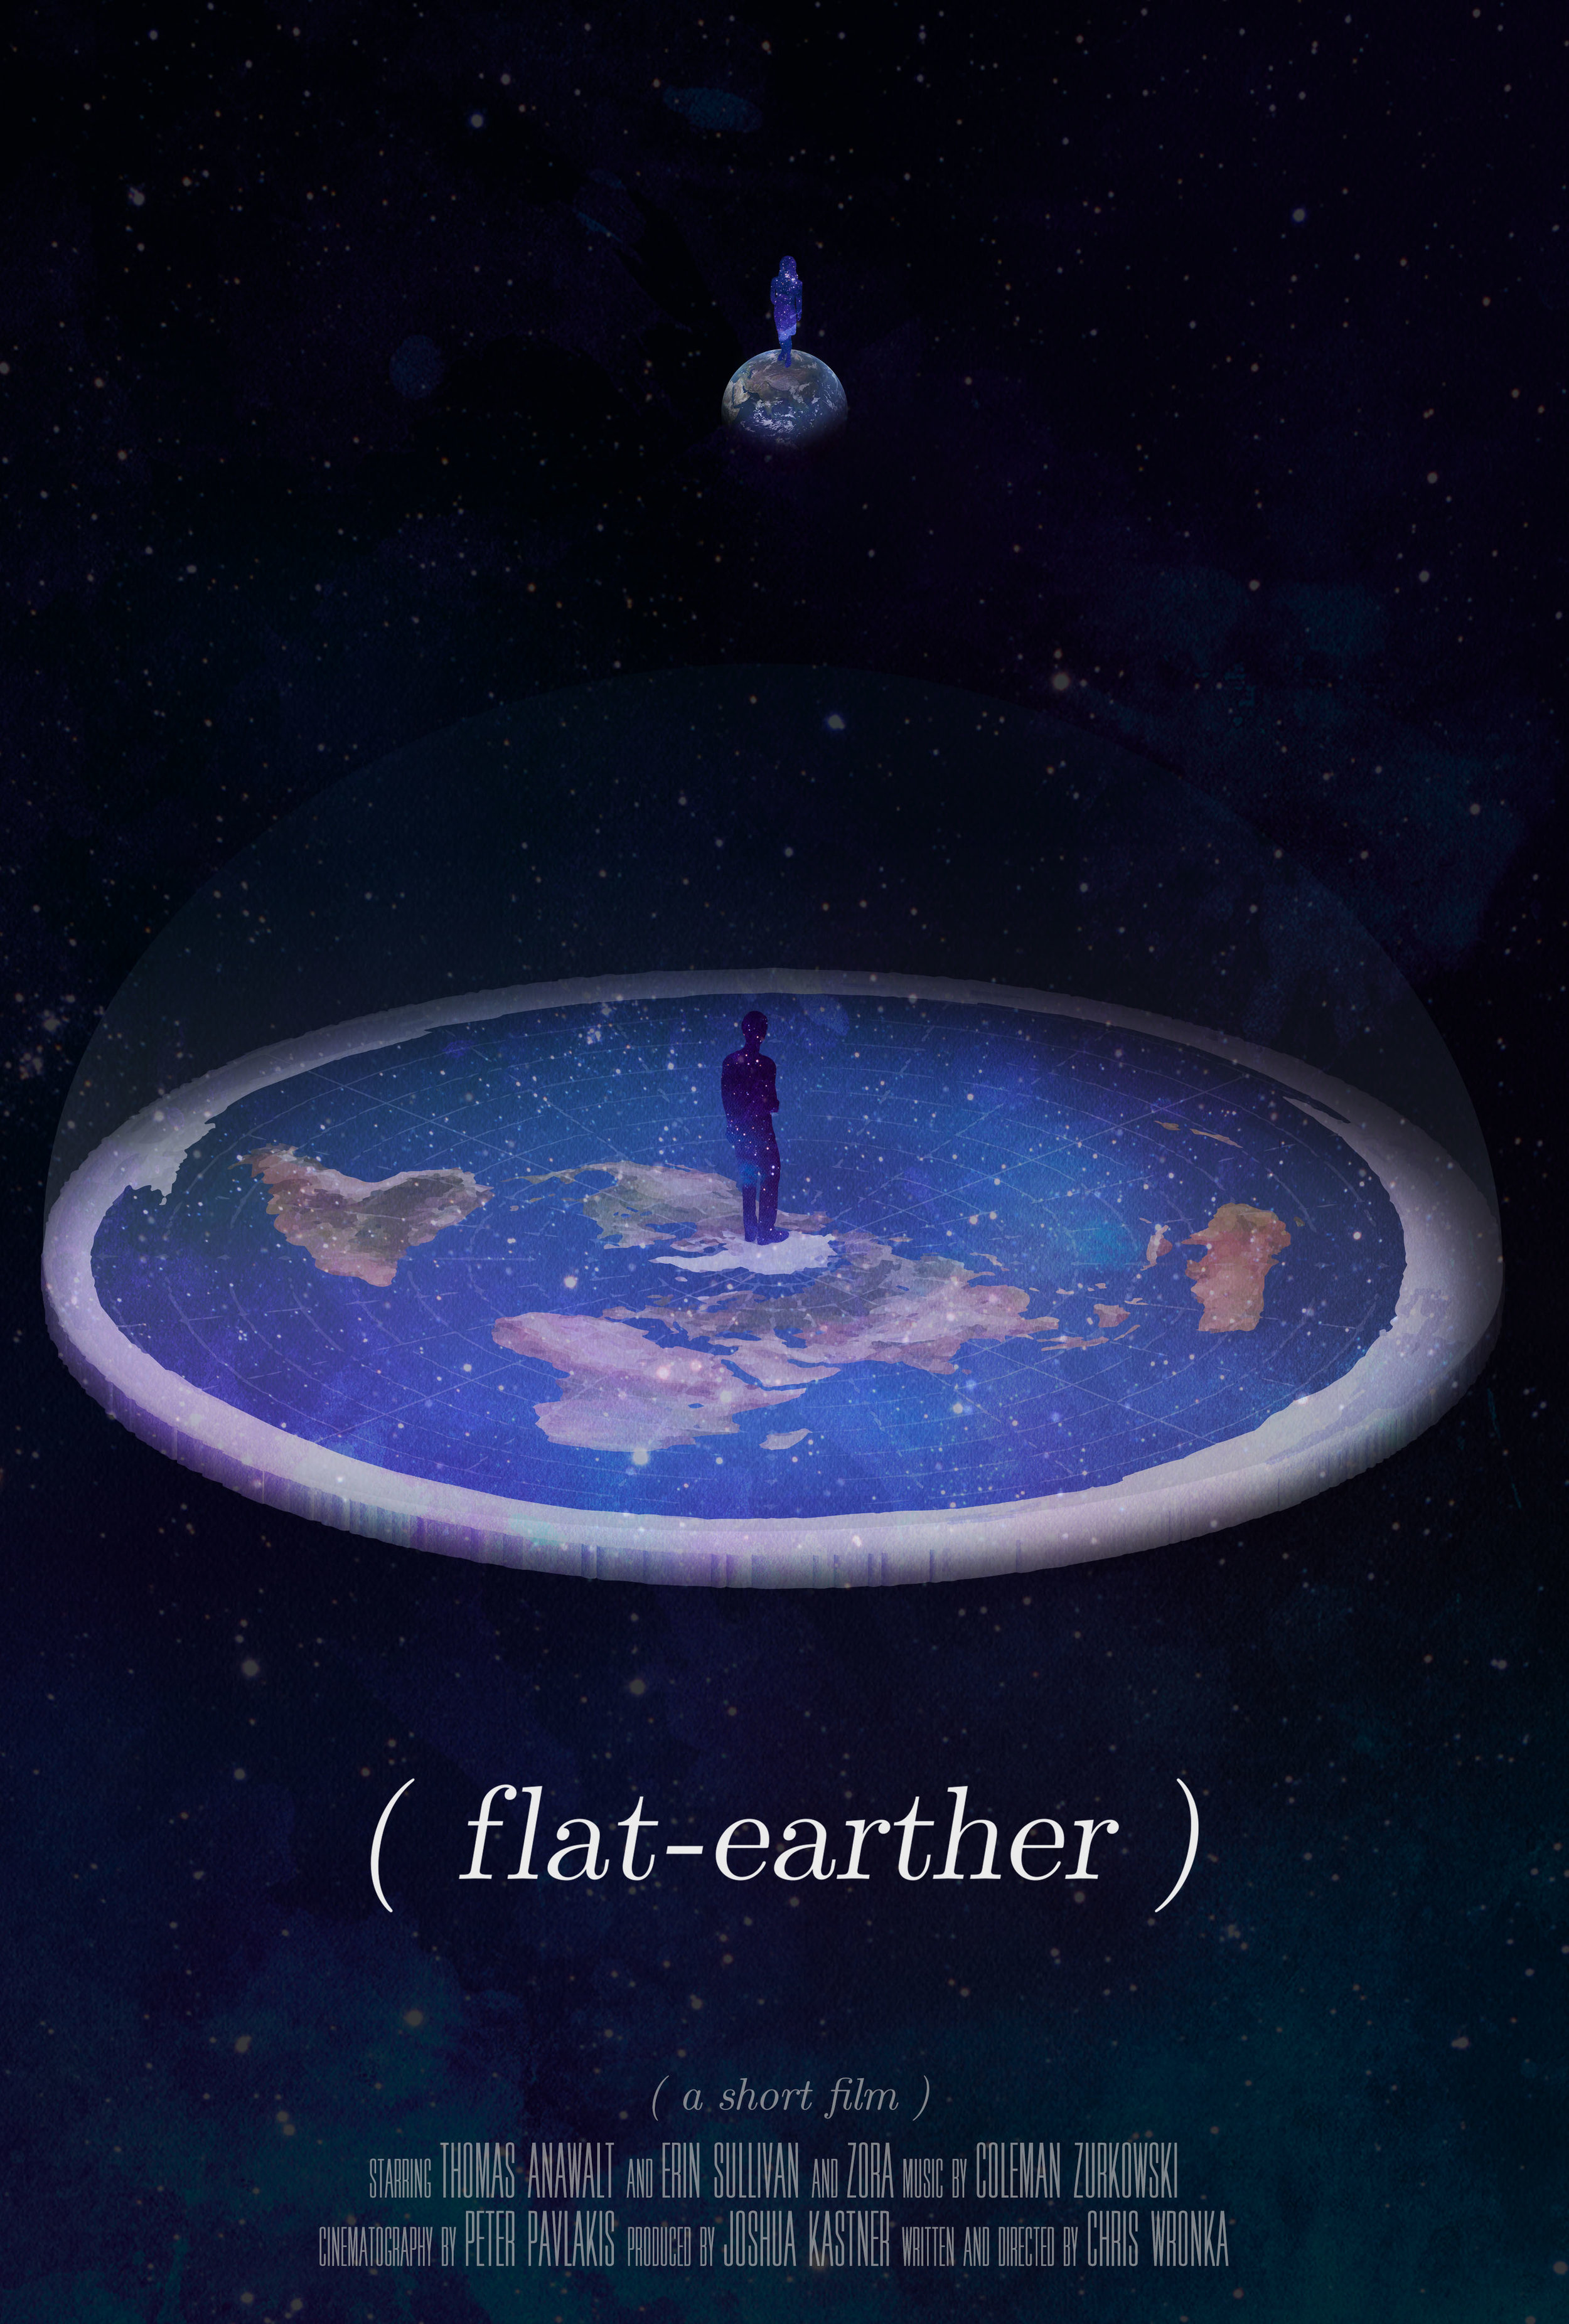 flat-earther-planets_0928.jpg